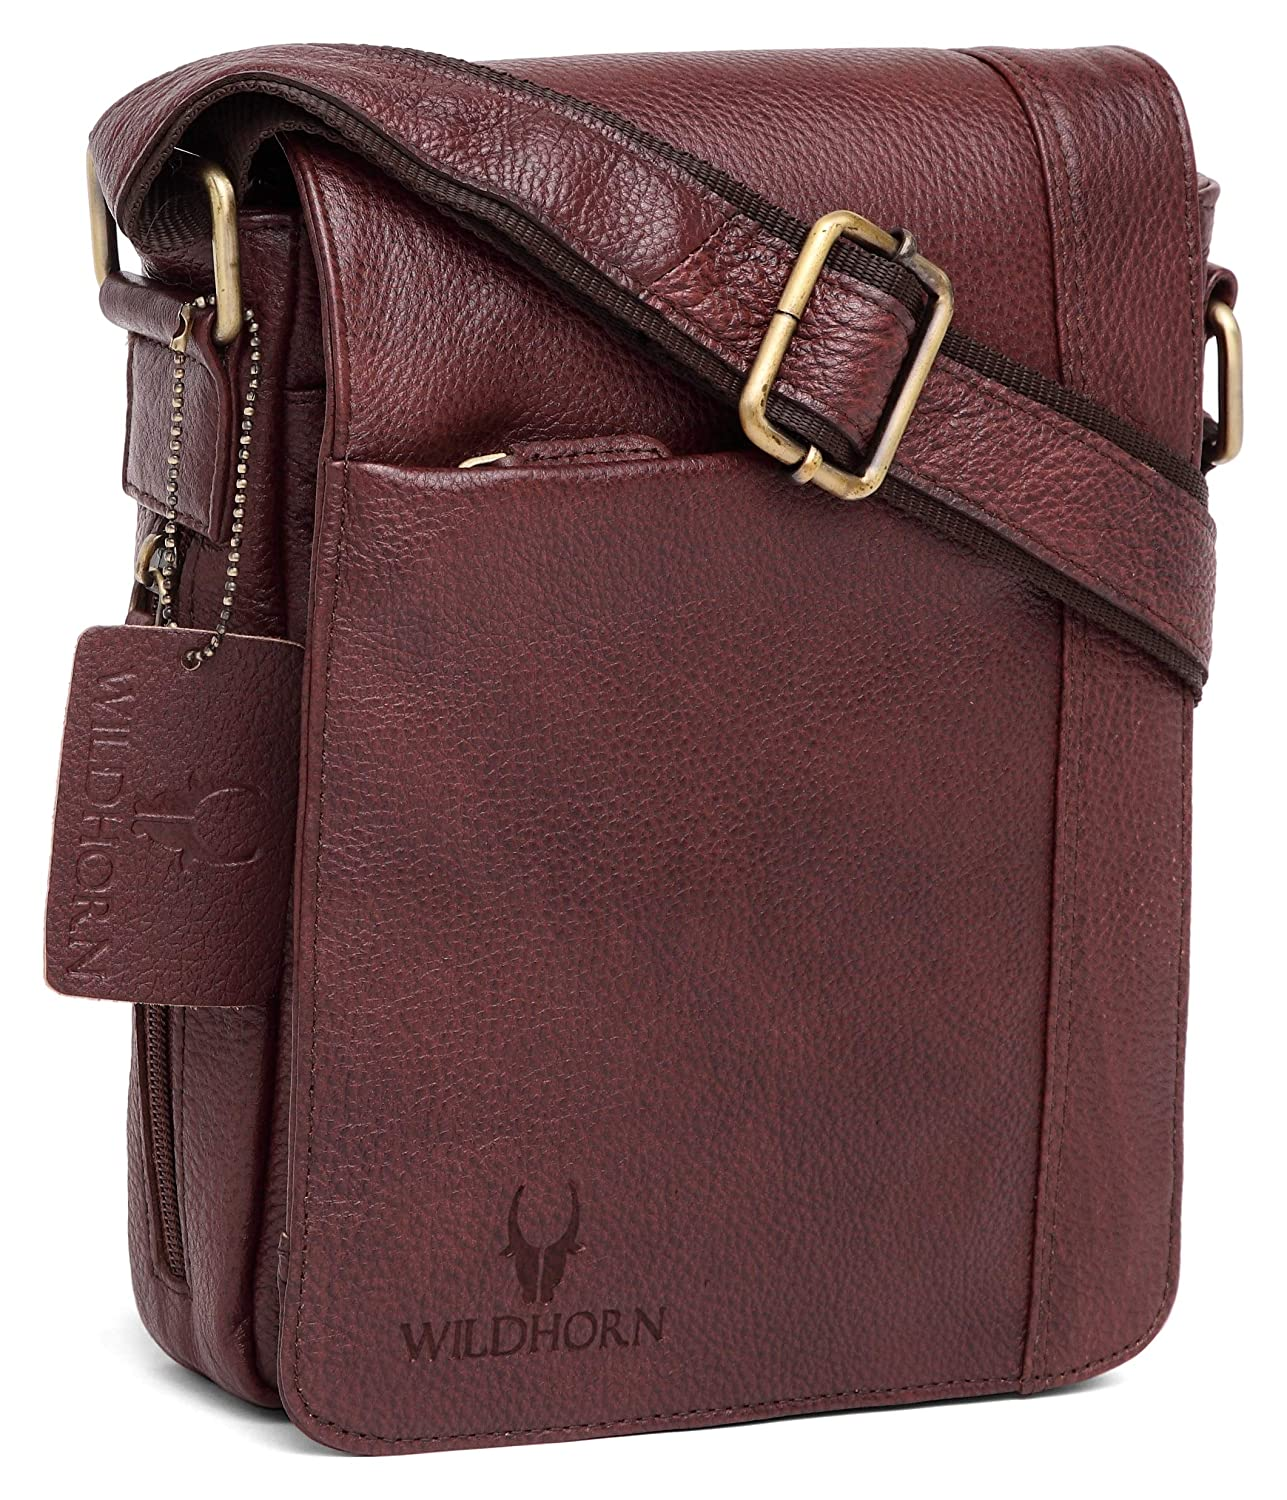 WILDHORN Leather 8.5 Inches Brown Messenger Bag (MB563)